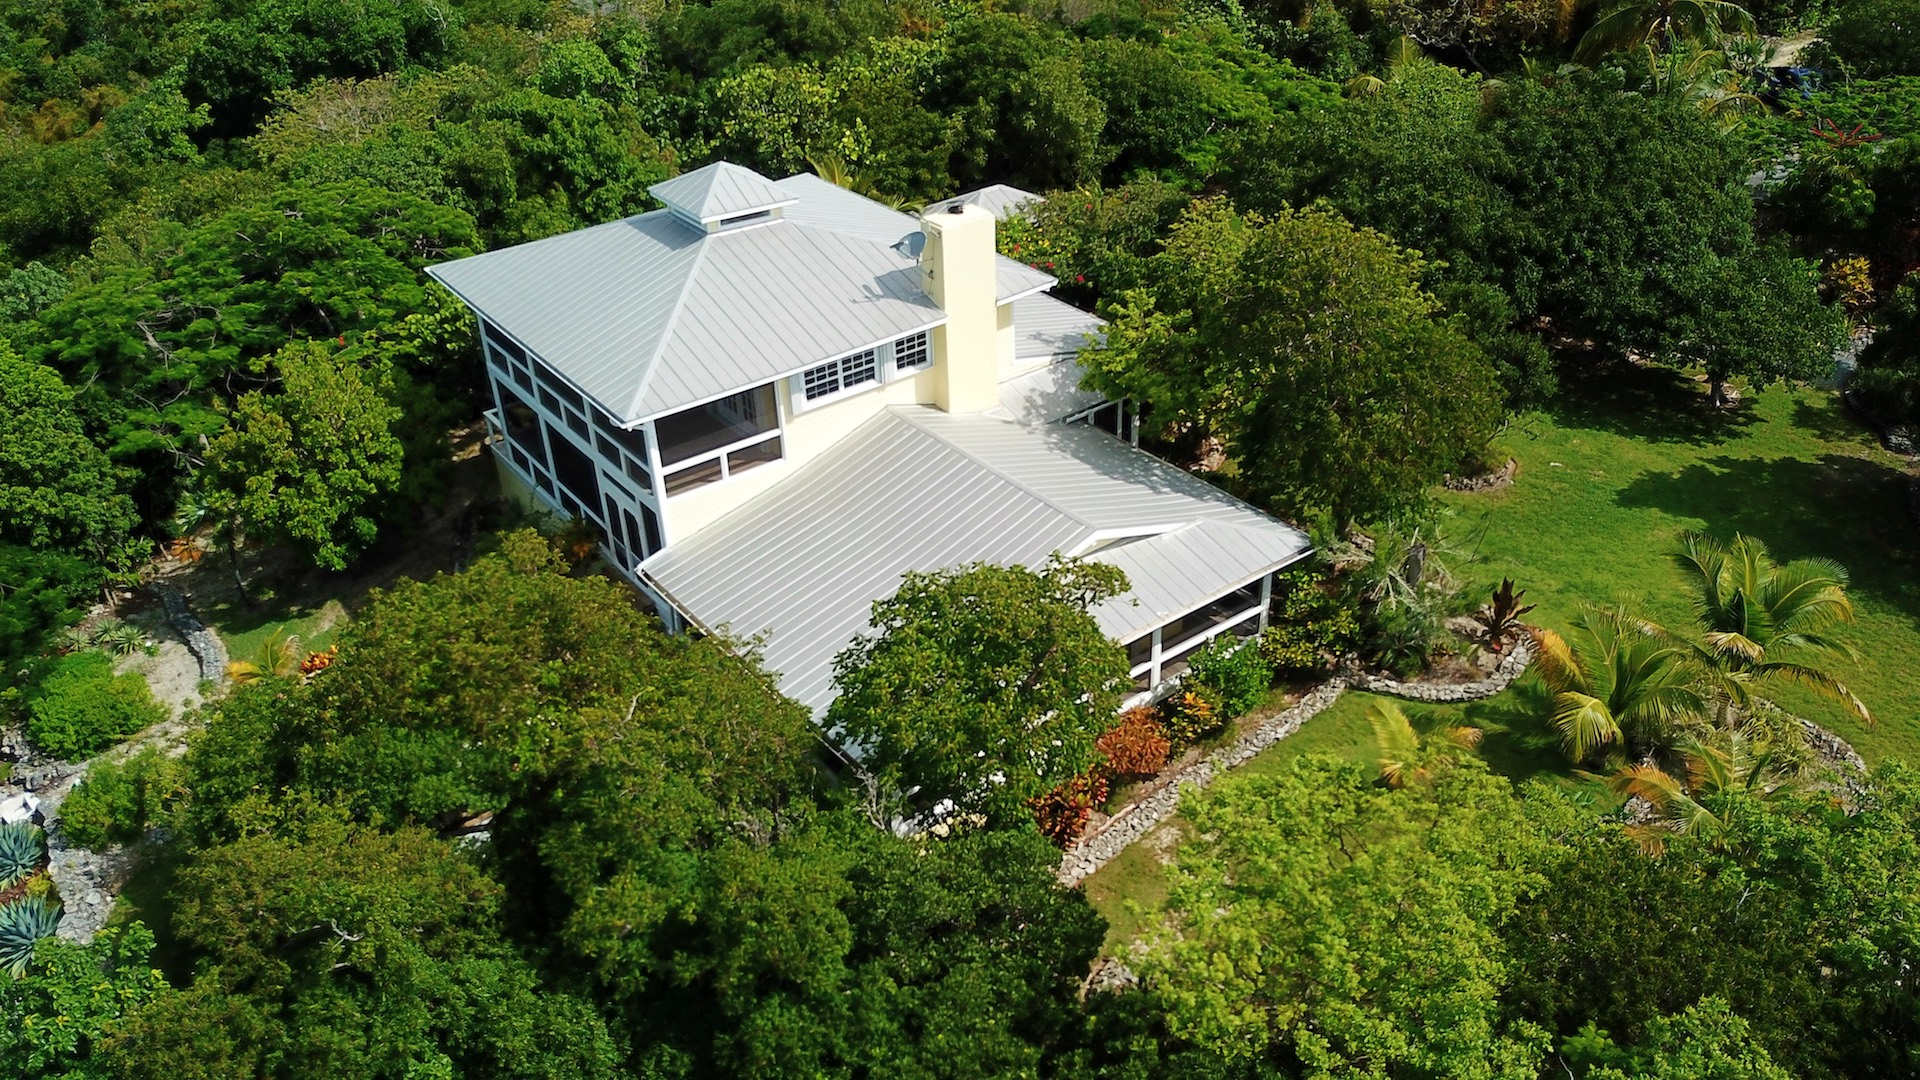 home for sale in paradise landscaped acreage beach dock